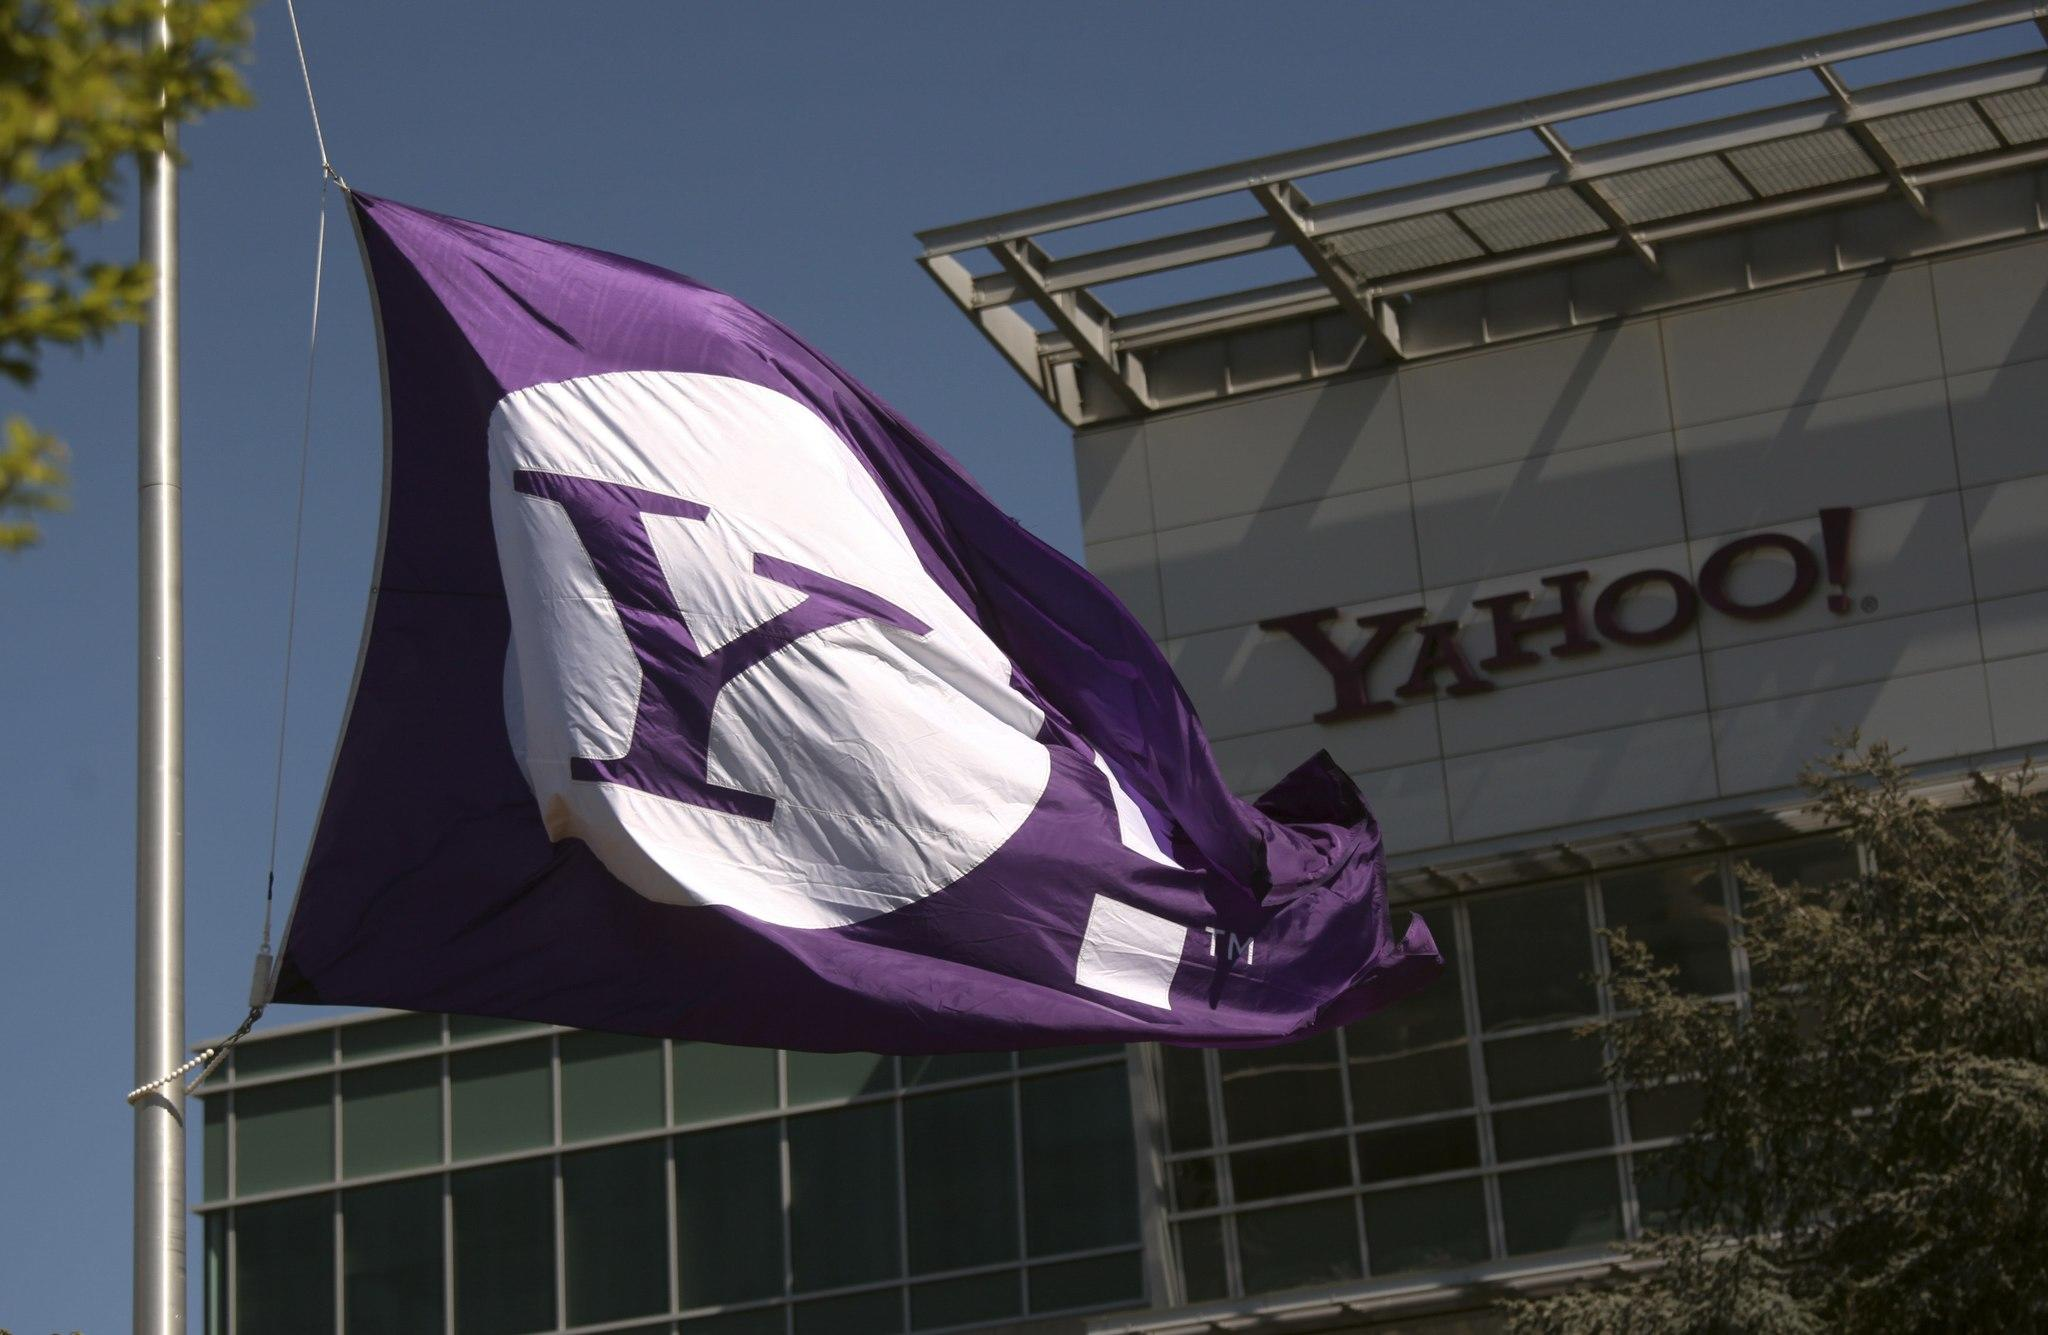 Yahoo acknowledged that its email service recently fell victim to a cyberattack that compromised of some accounts.